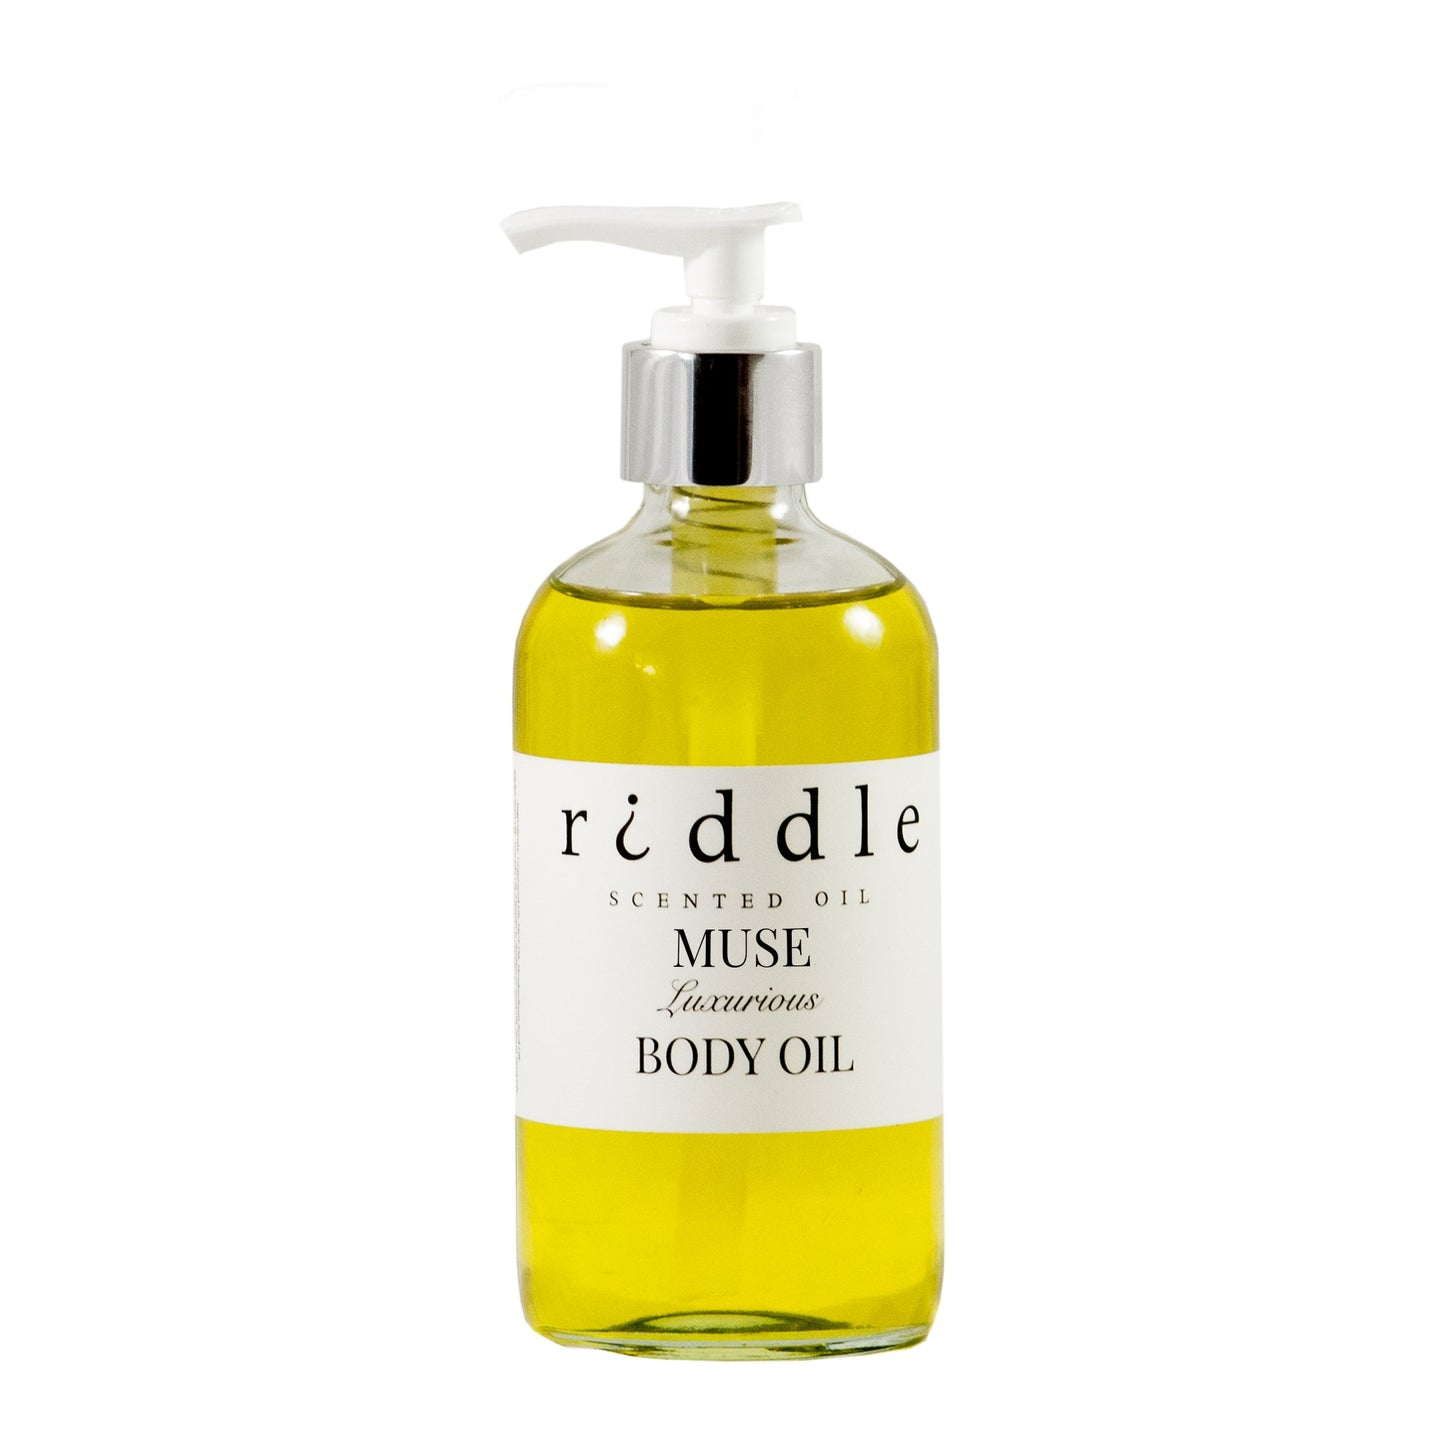 Riddle Body Oil - Muse